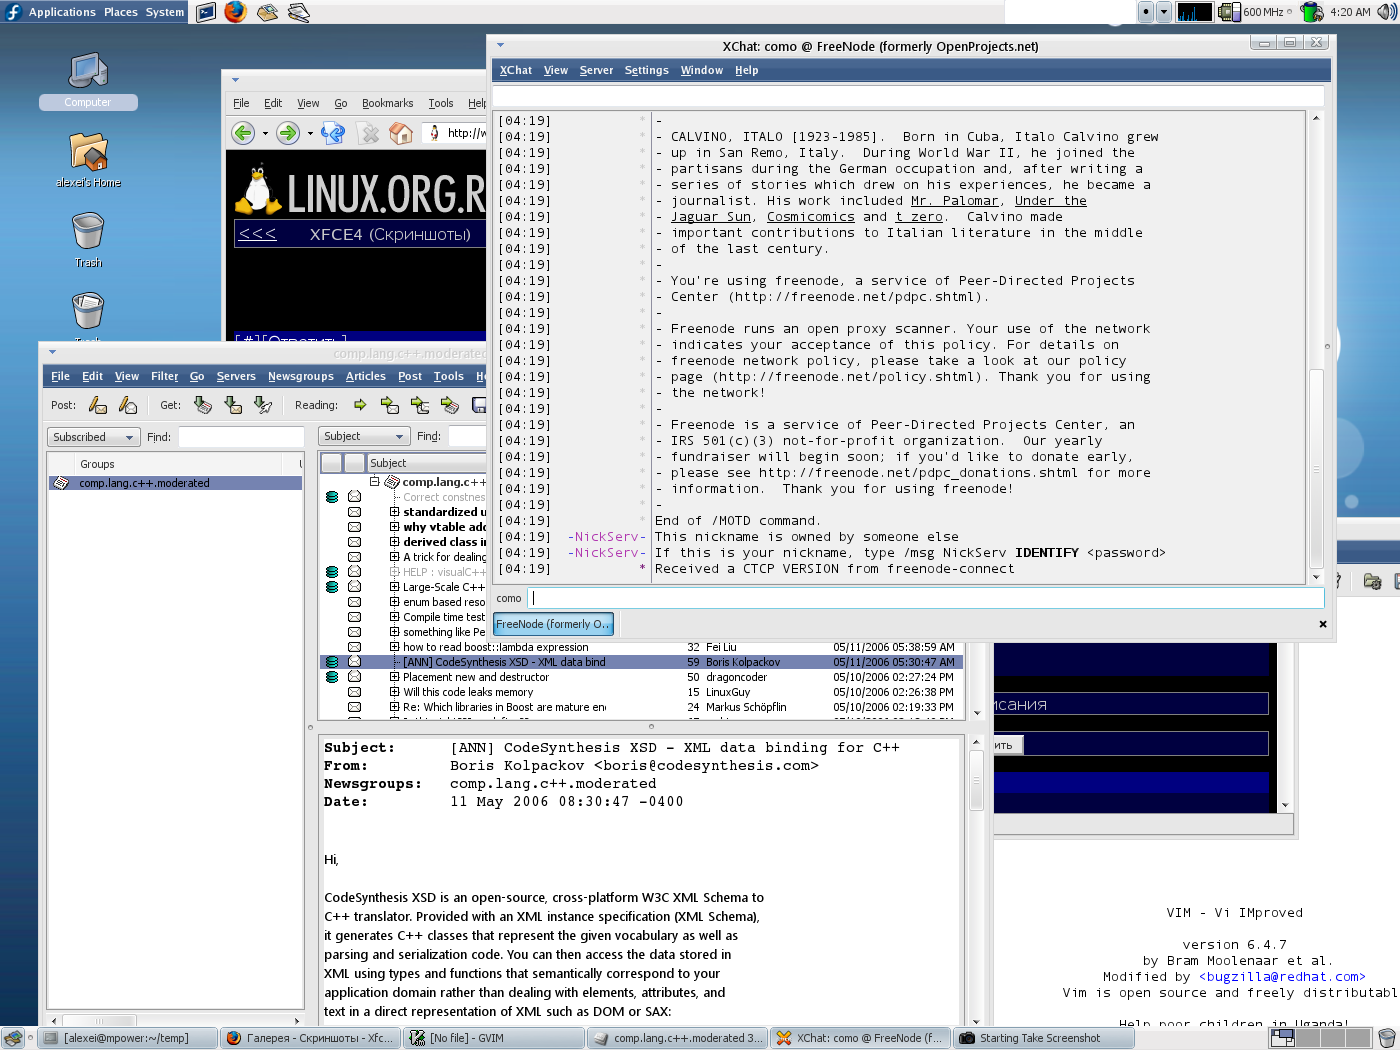 codesynthesis xsd alternative Codesynthesis xsd, an open source, cross-platform xml data binding compiler for c++ supports aristoteles, an open source viewer for citygml data oxygen xml schema editor offers powerful content completion support, a quick assist tool component occurences.